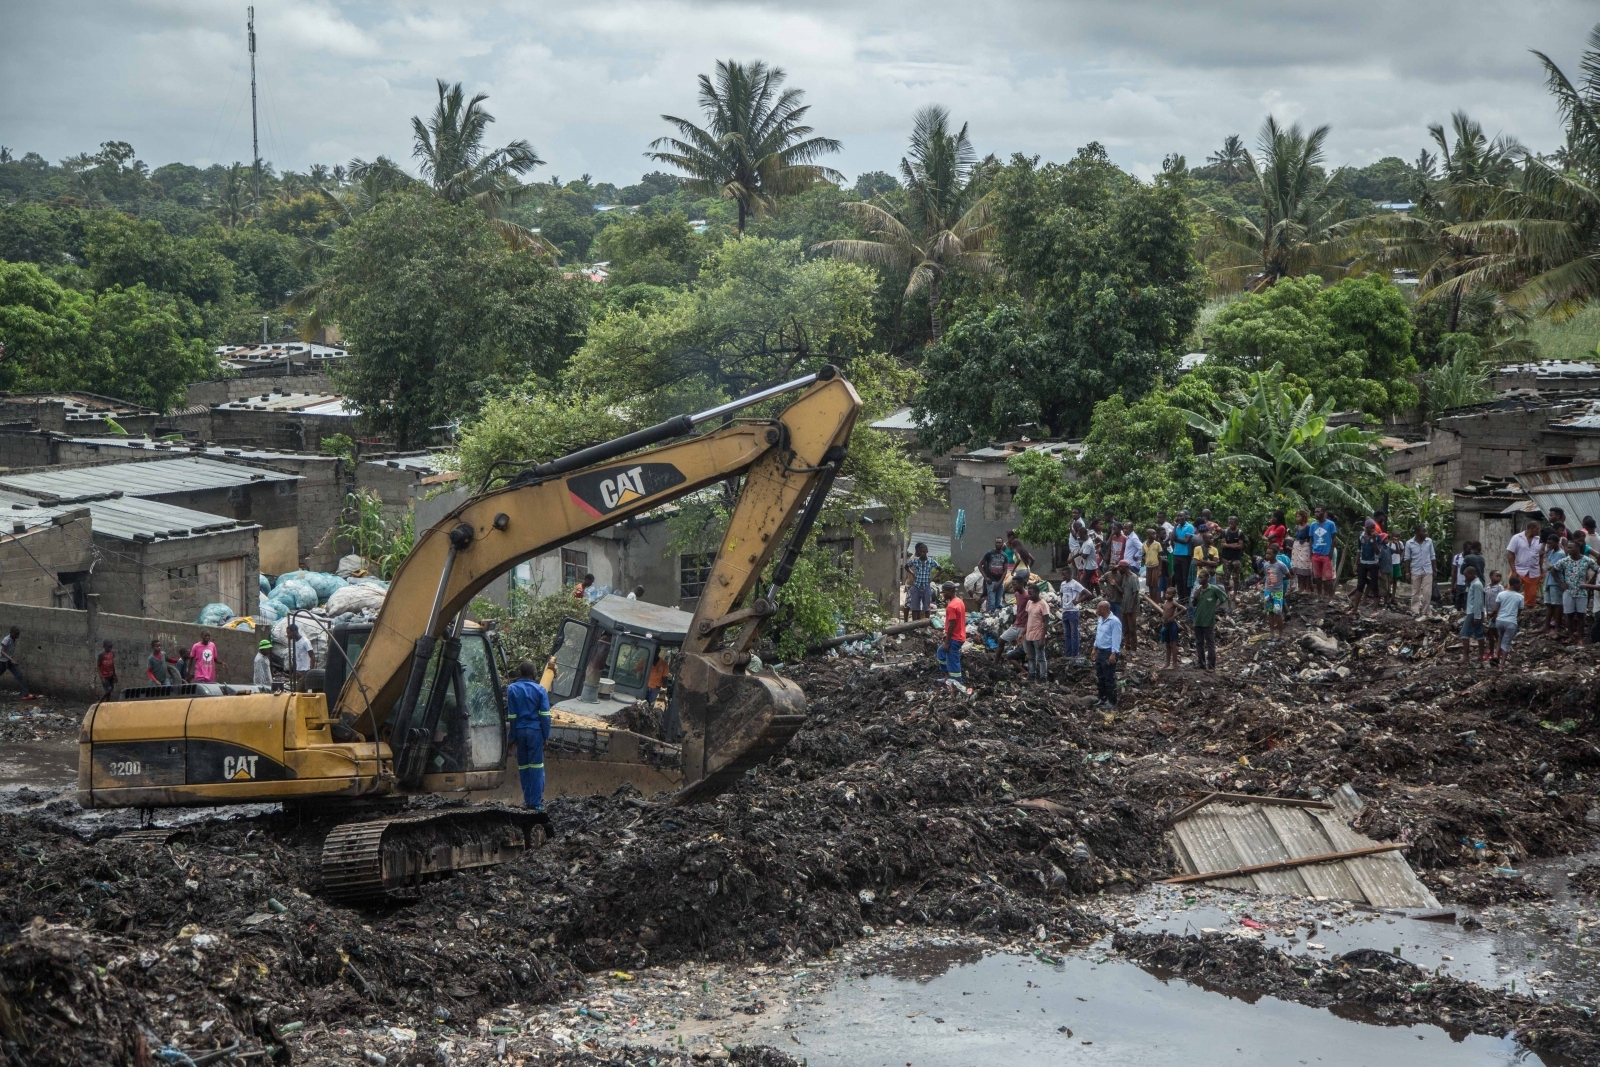 Mozambique garbage dump collapse